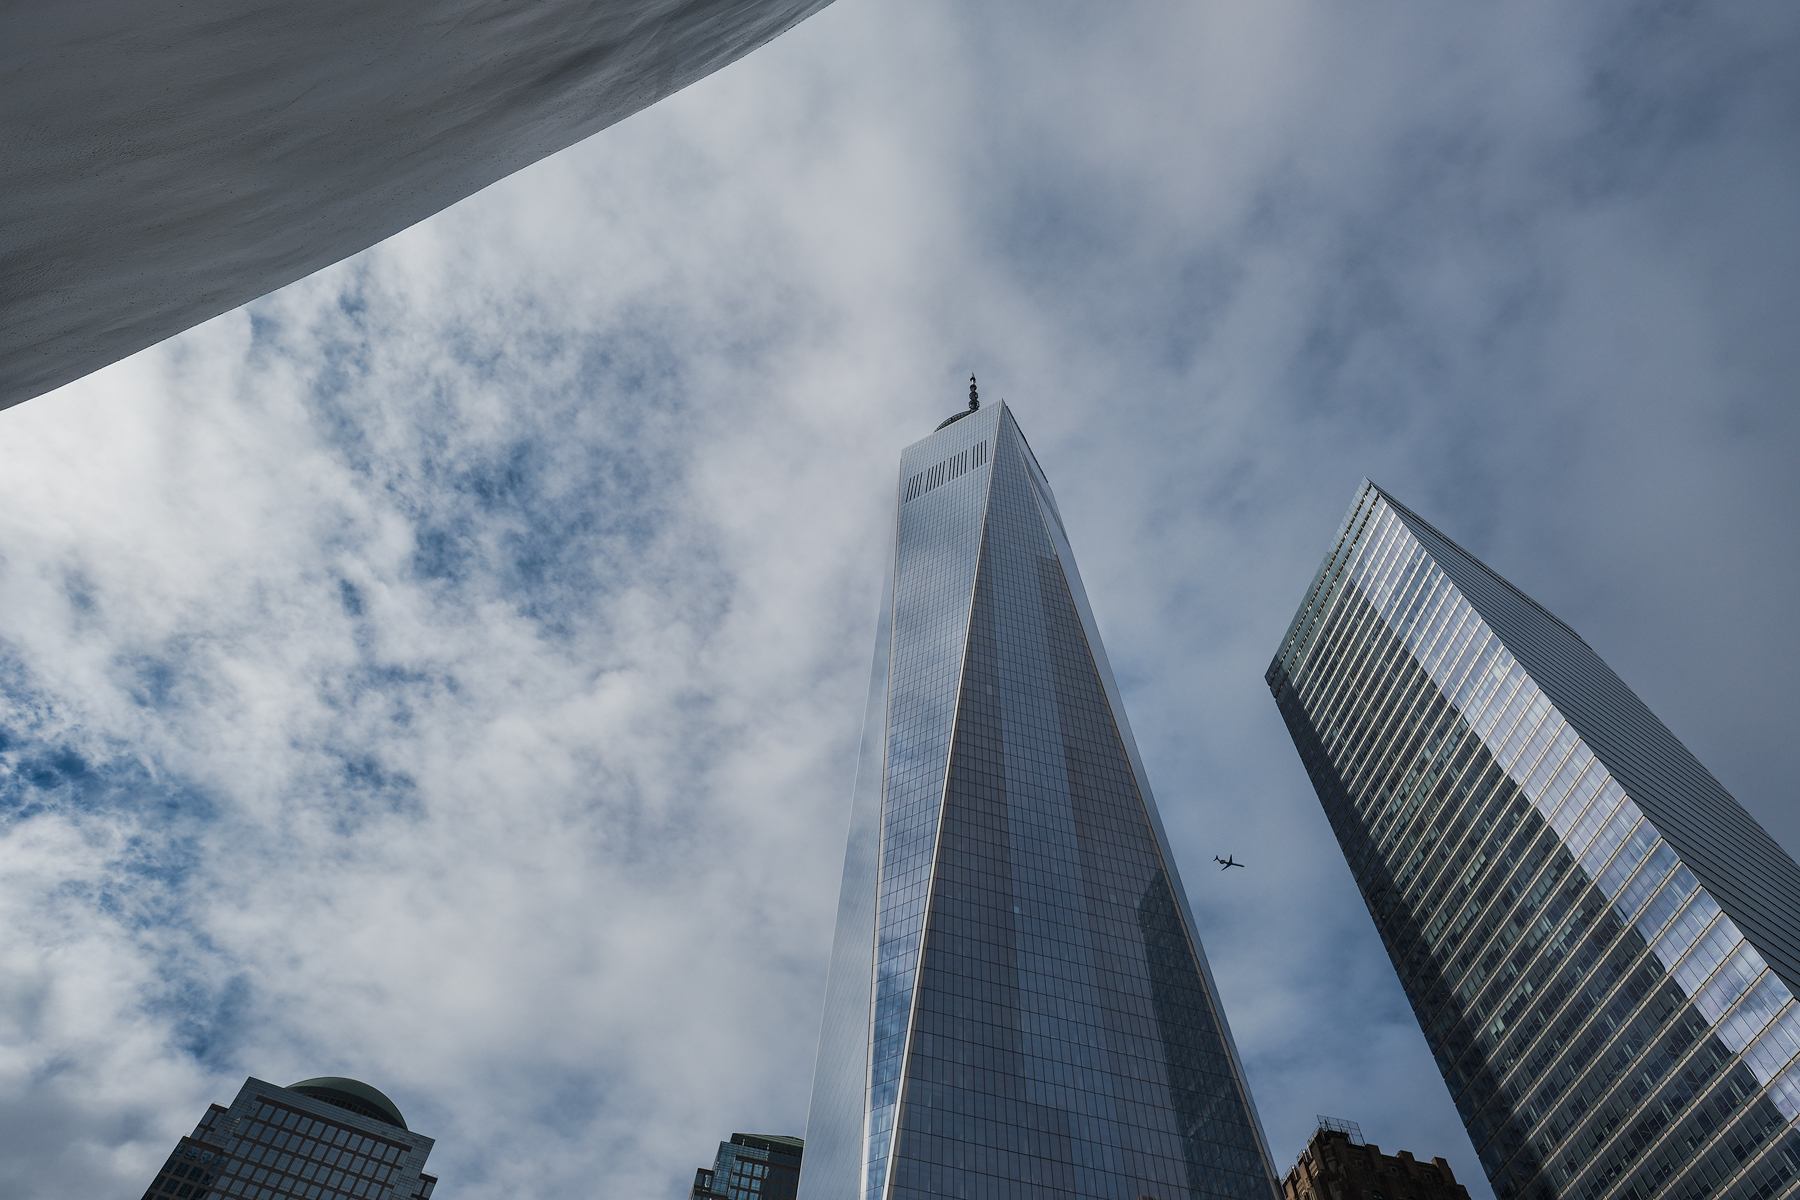 High, and far away, a plane appears between The World Trade Center and another tower.